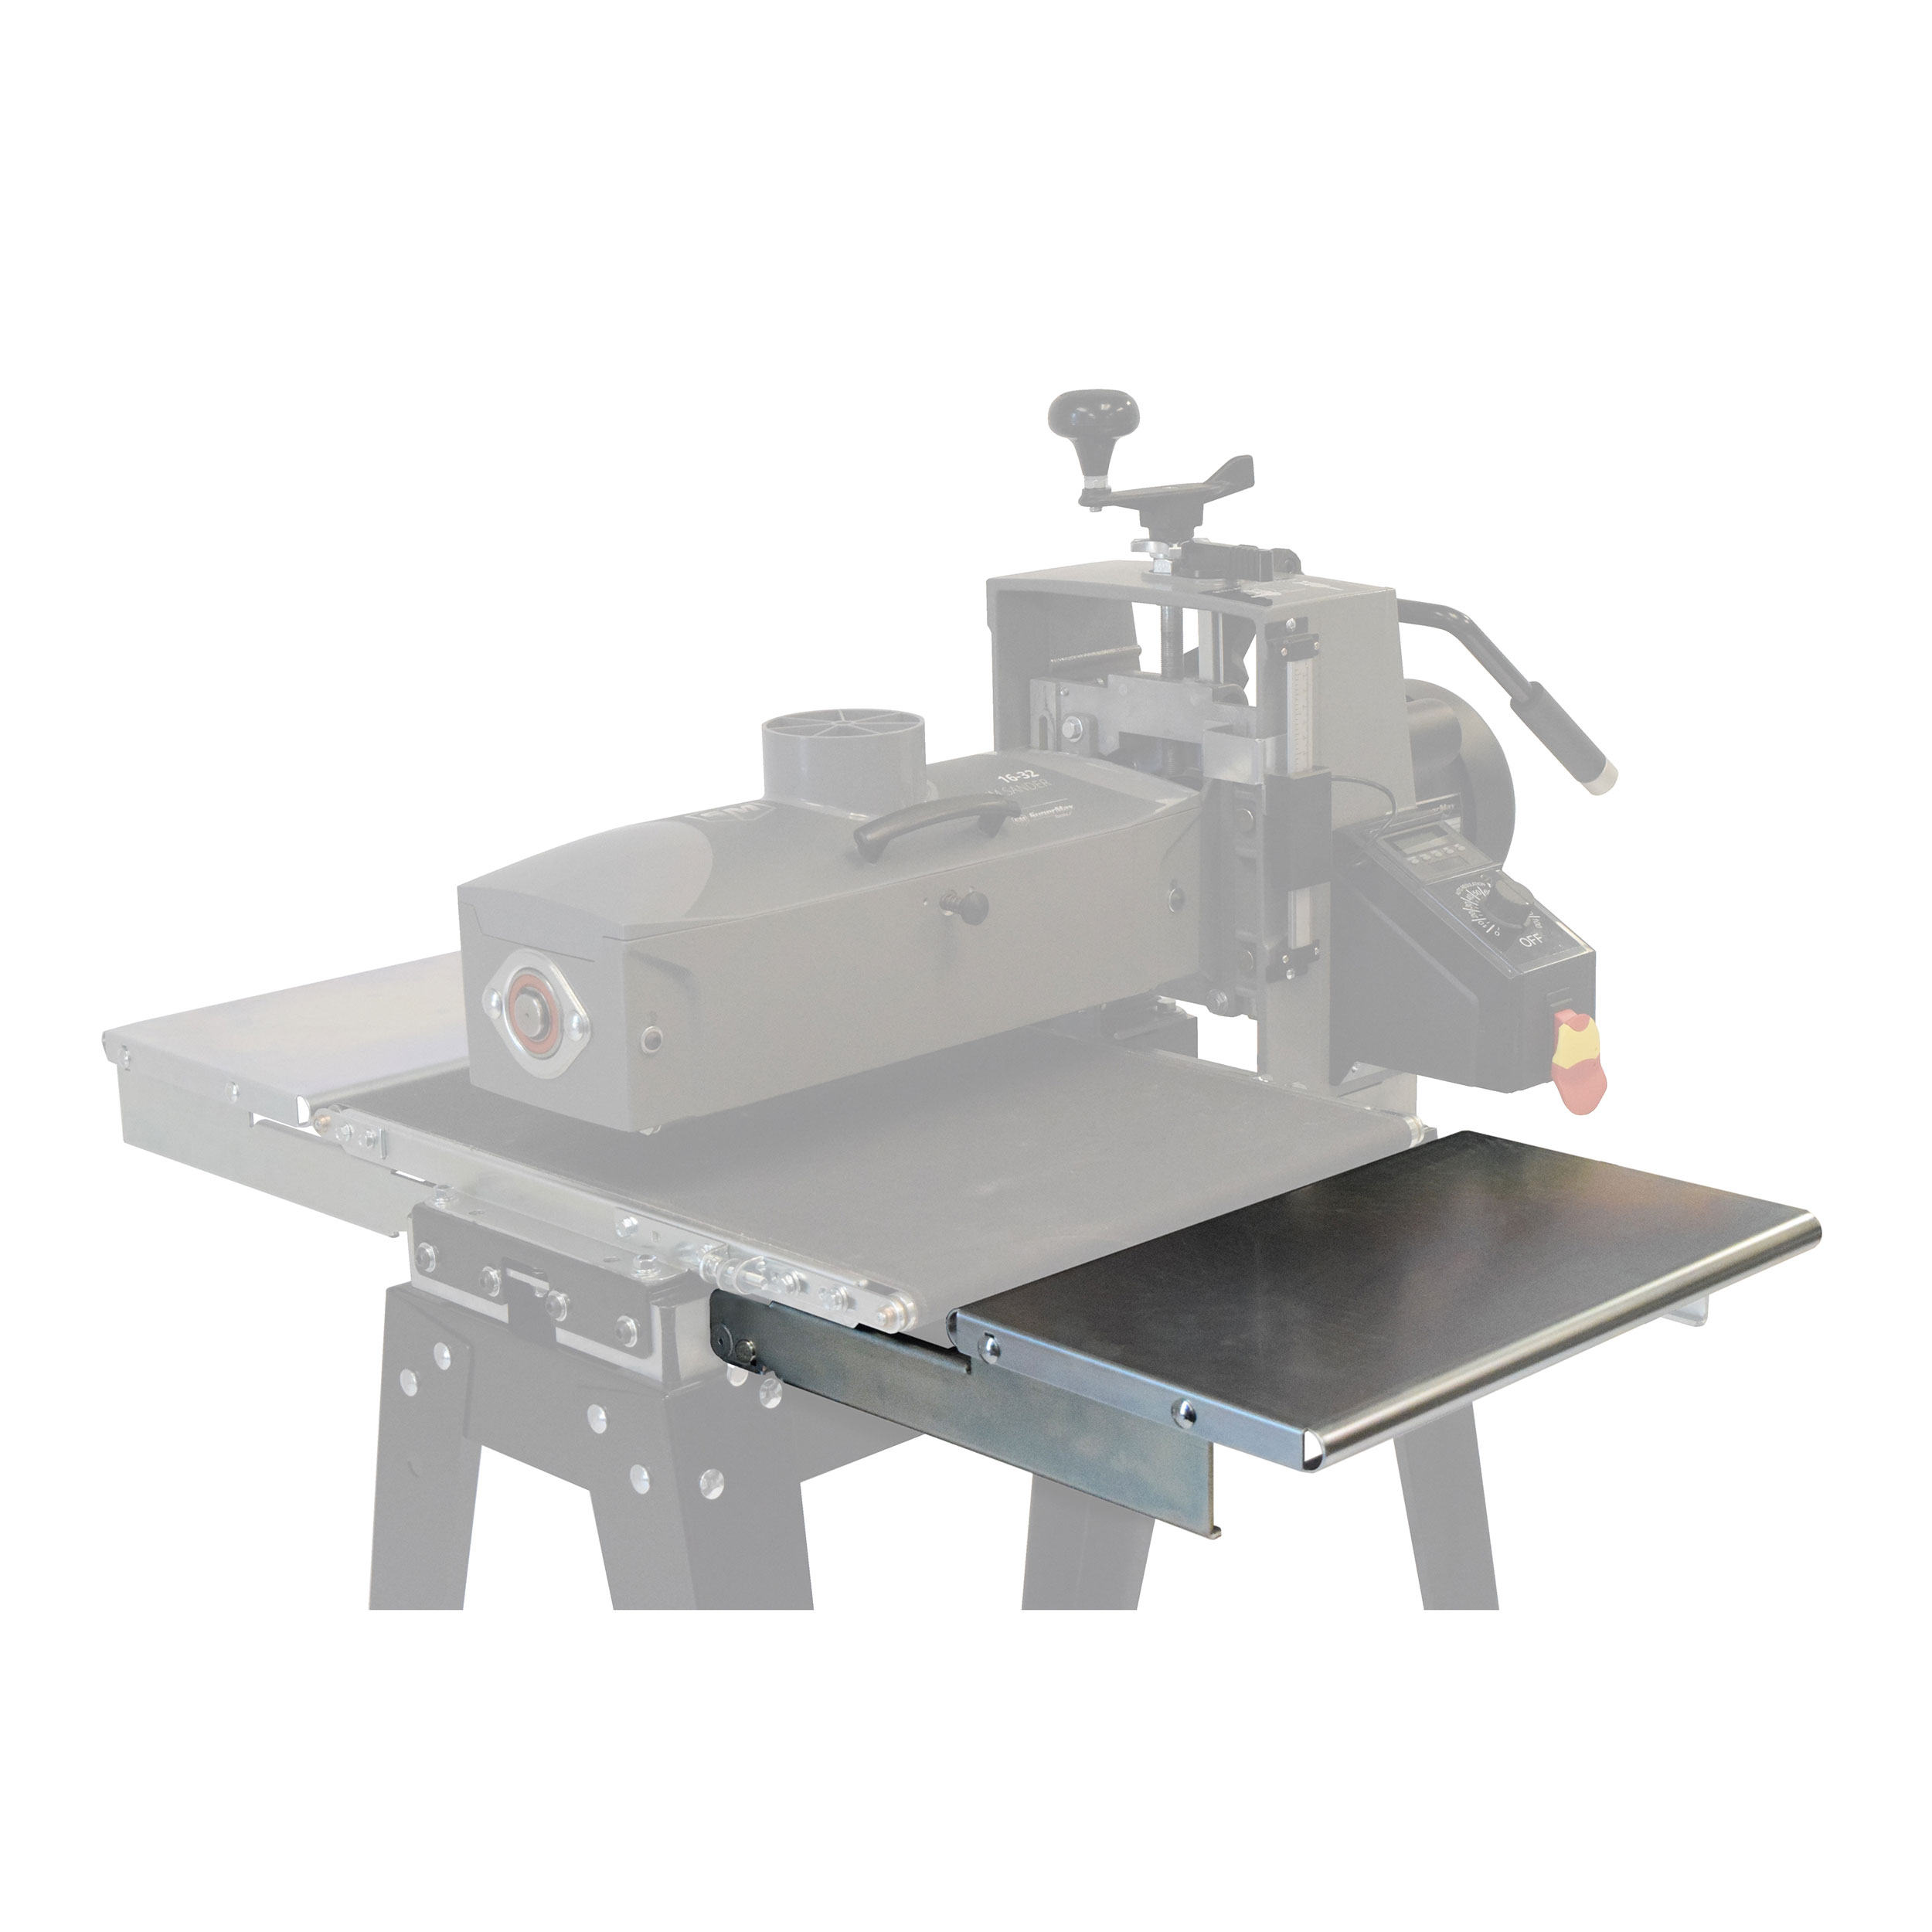 16-32 Folding Infeed/Outfeed Tables